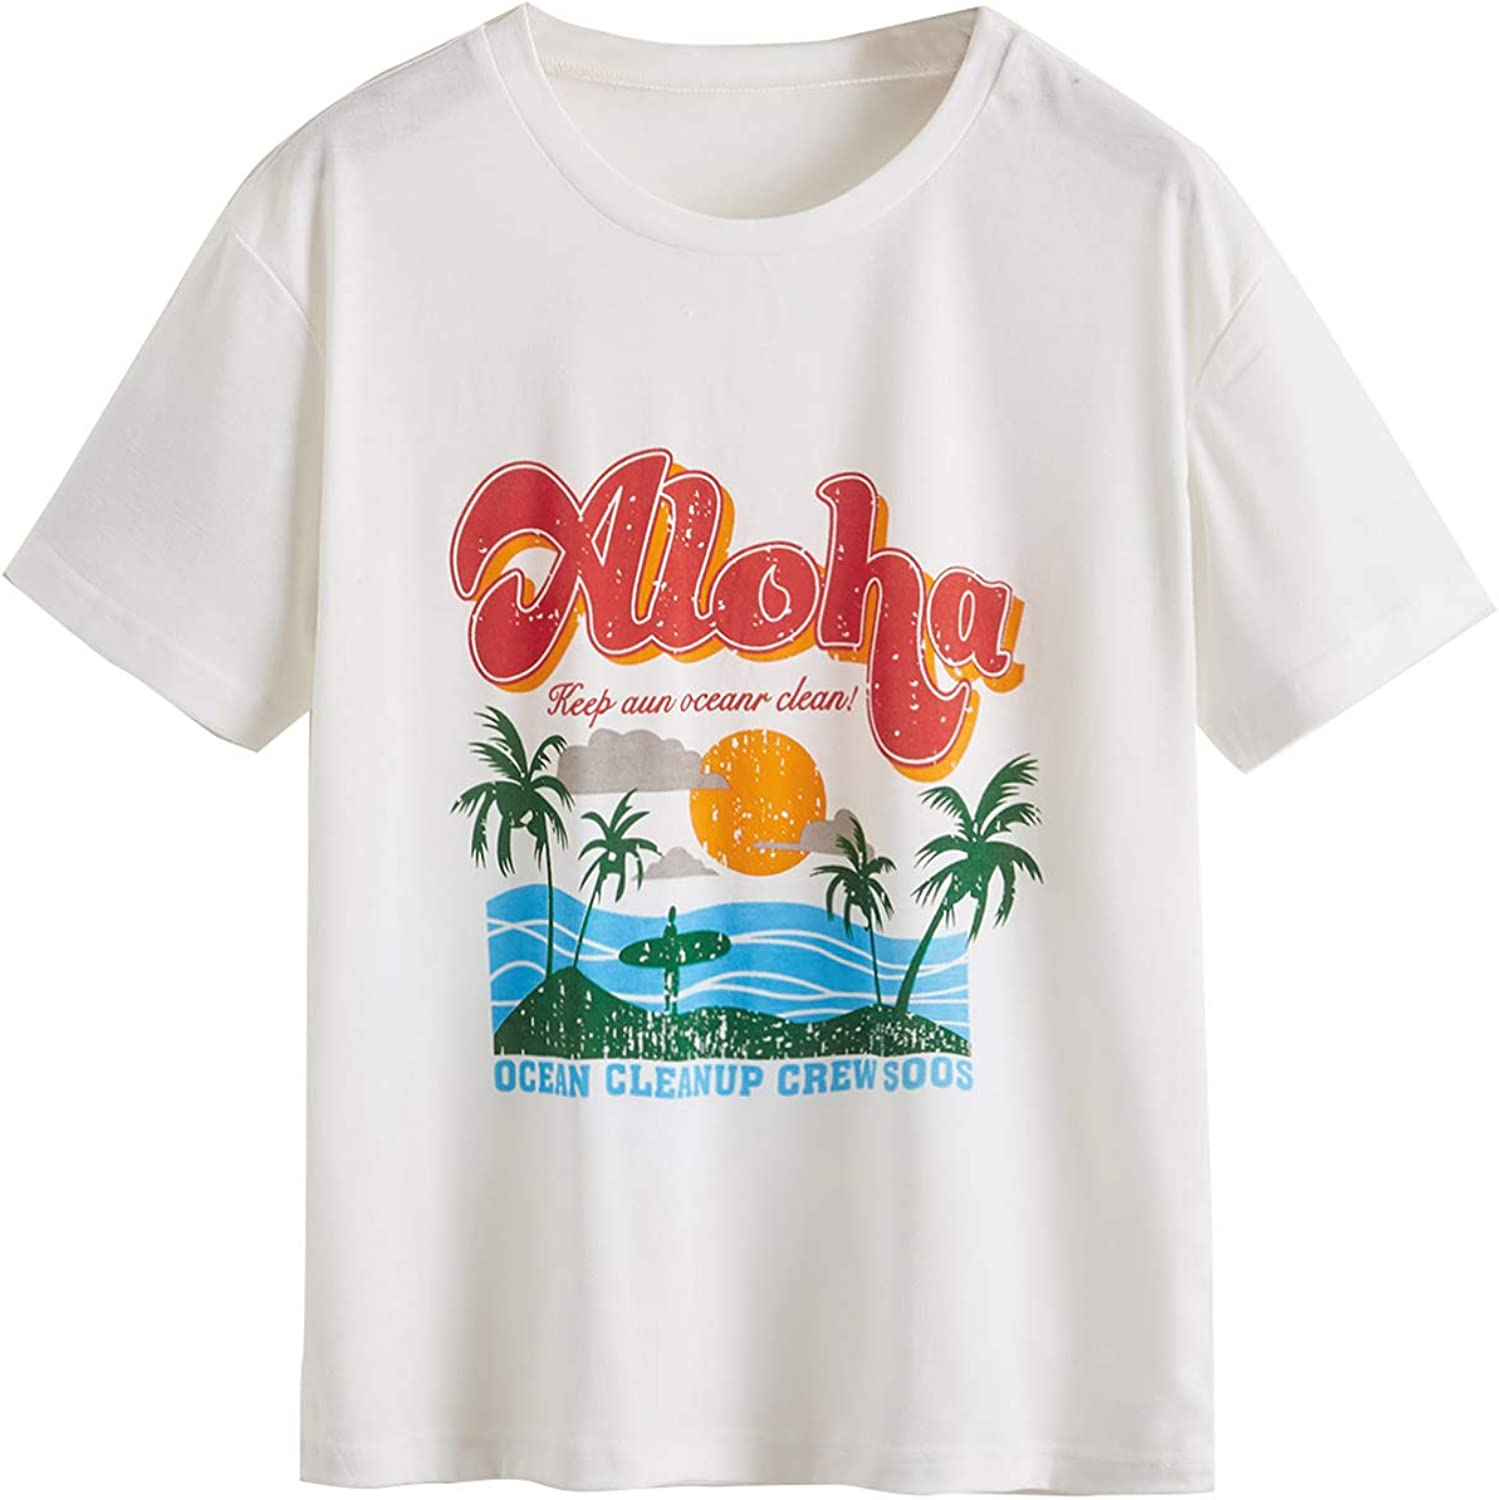 SheIn Women's Summer Tropical Graphic T Shirt for Beach Casual Letter Print Tee Short Sleeve Round Neck Top